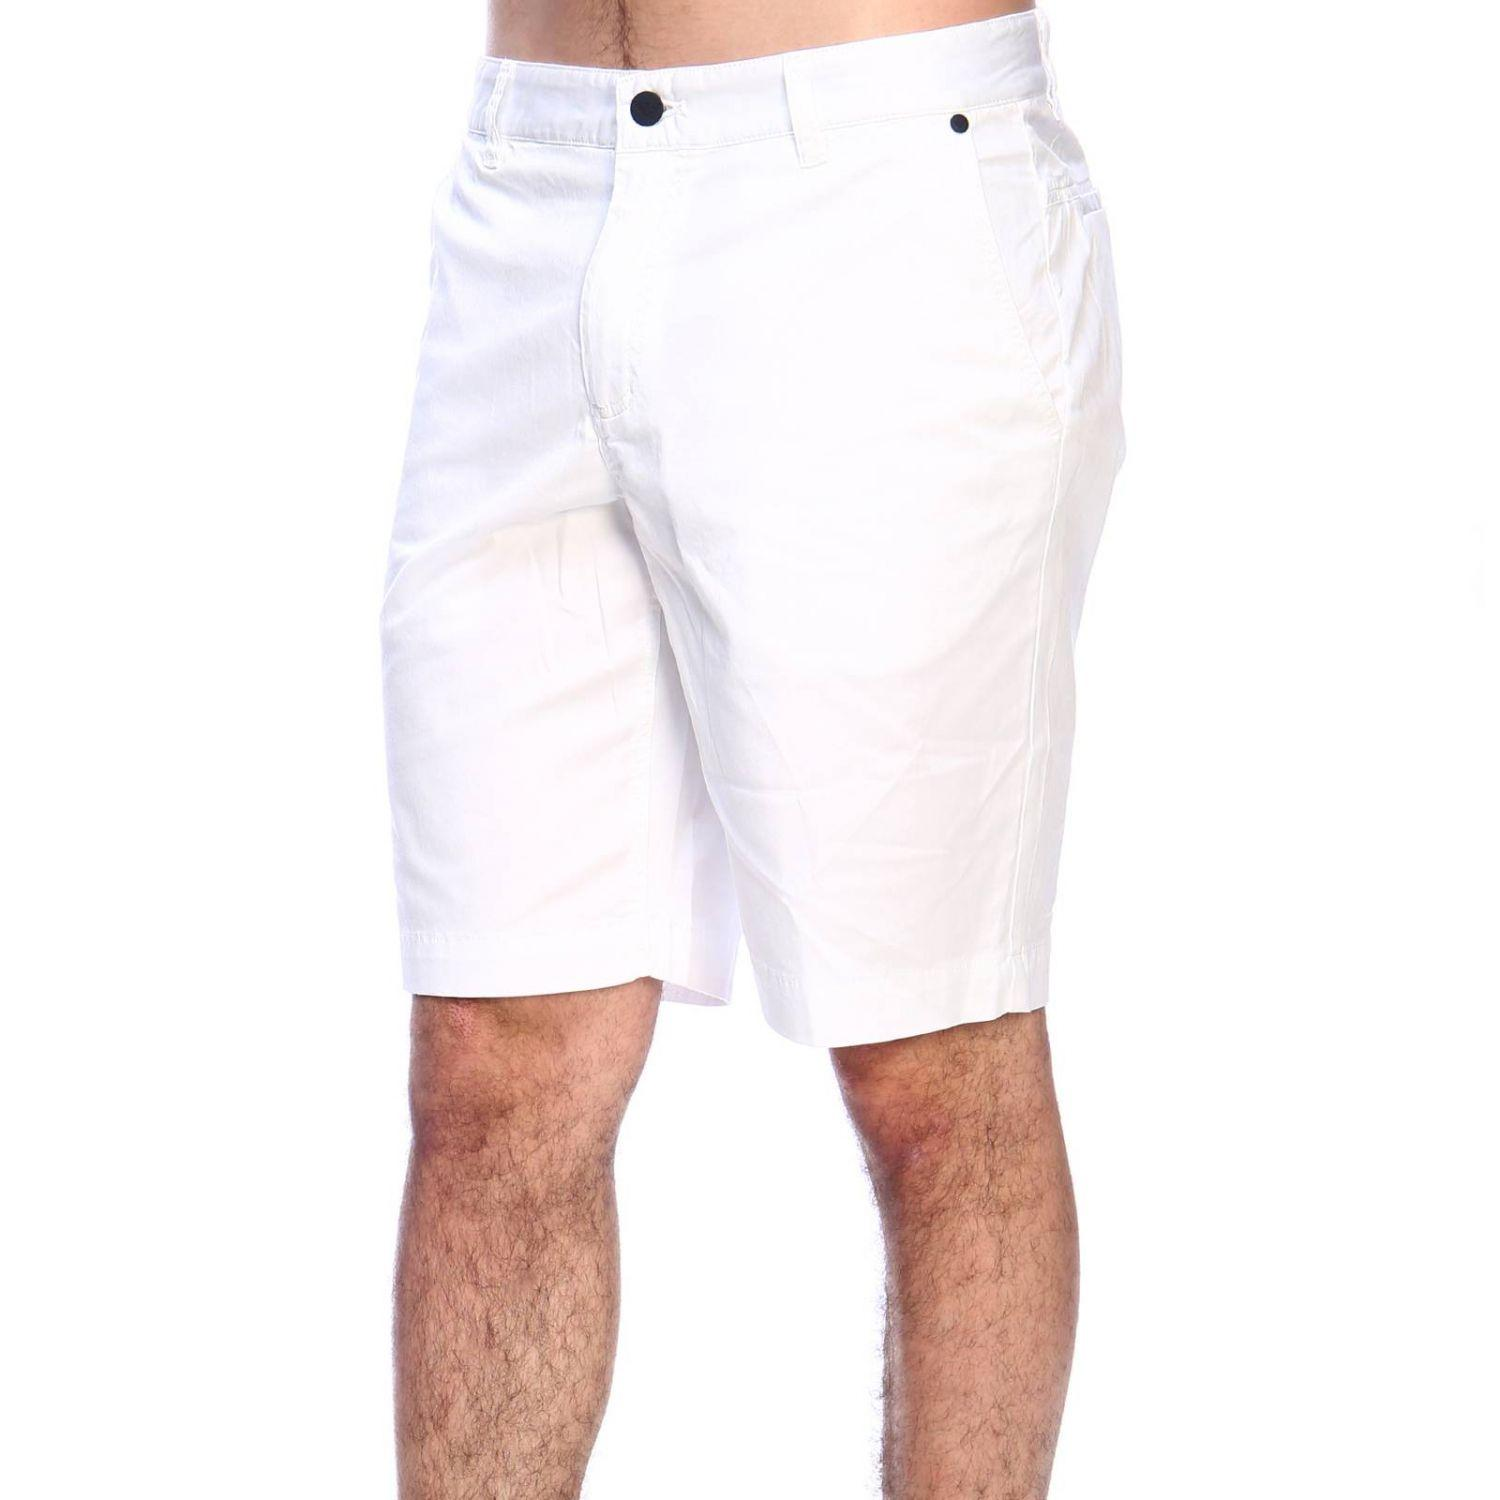 8a2c476f49d6 ... Bermuda Shorts Men Ea7 for Men - Lyst. View fullscreen